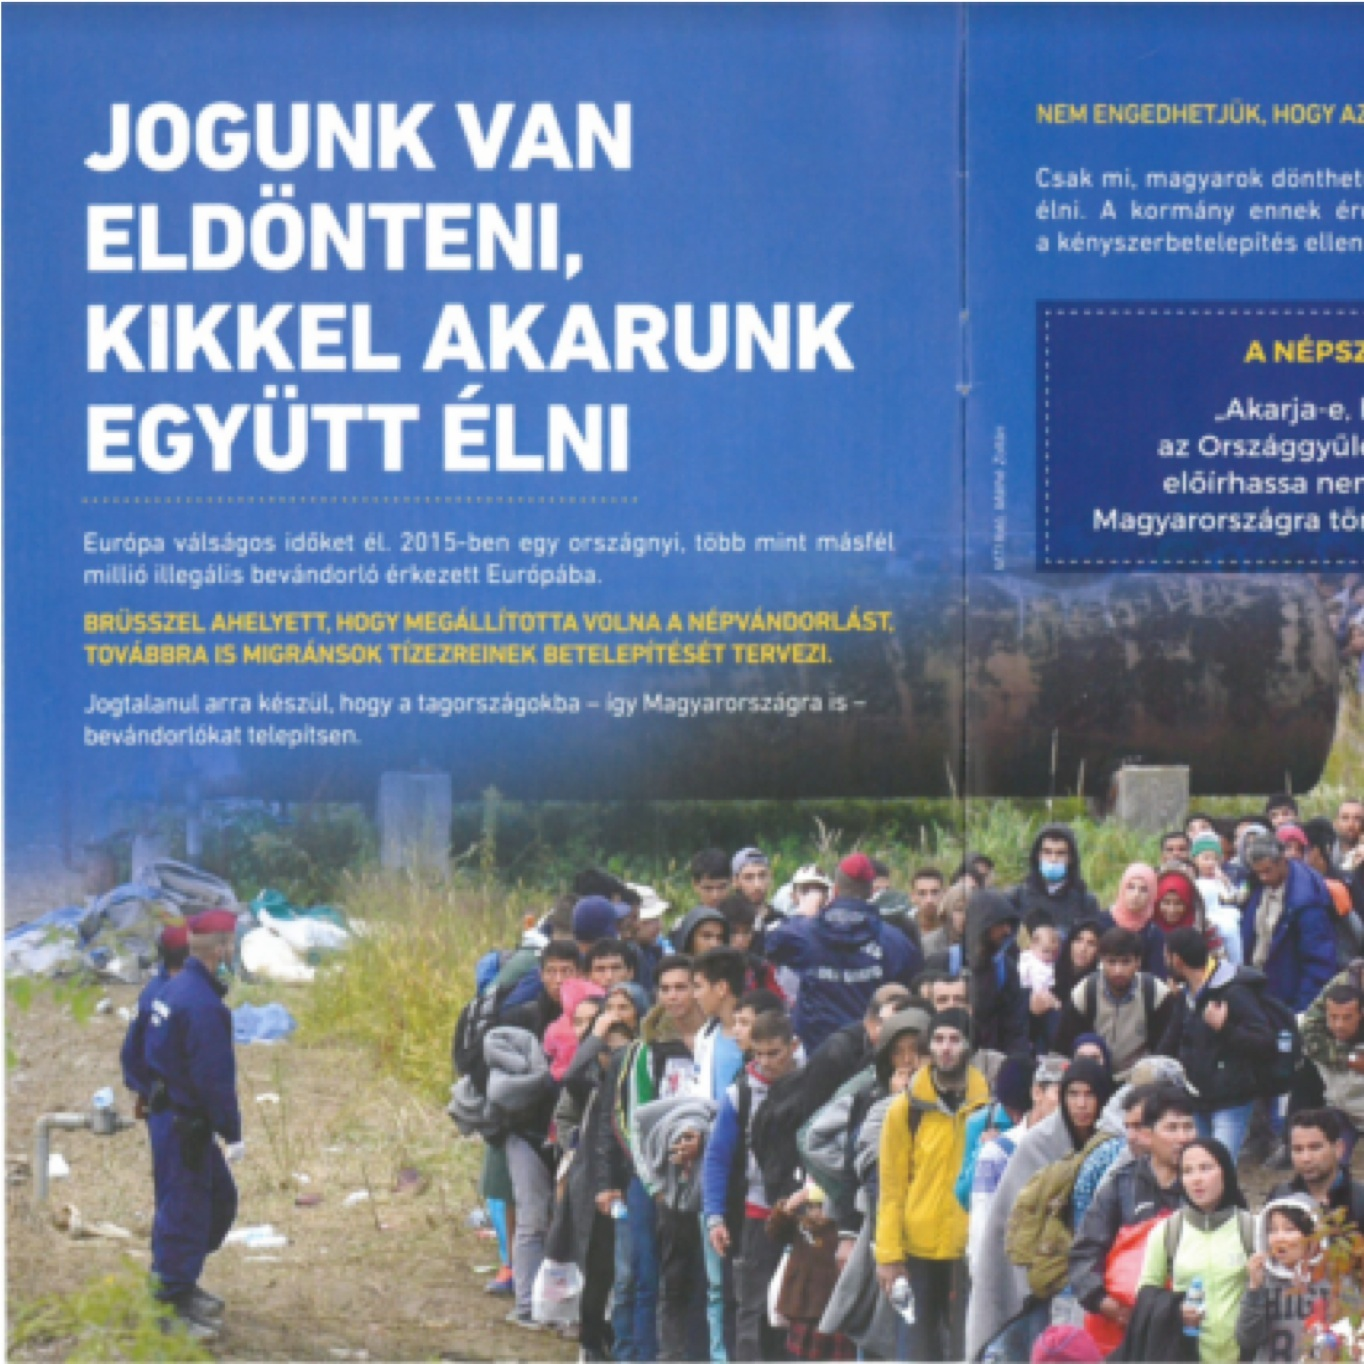 """""""We have the right to decide with whom we want to live"""". Hungarian government anti-migrant propaganda, 2015."""